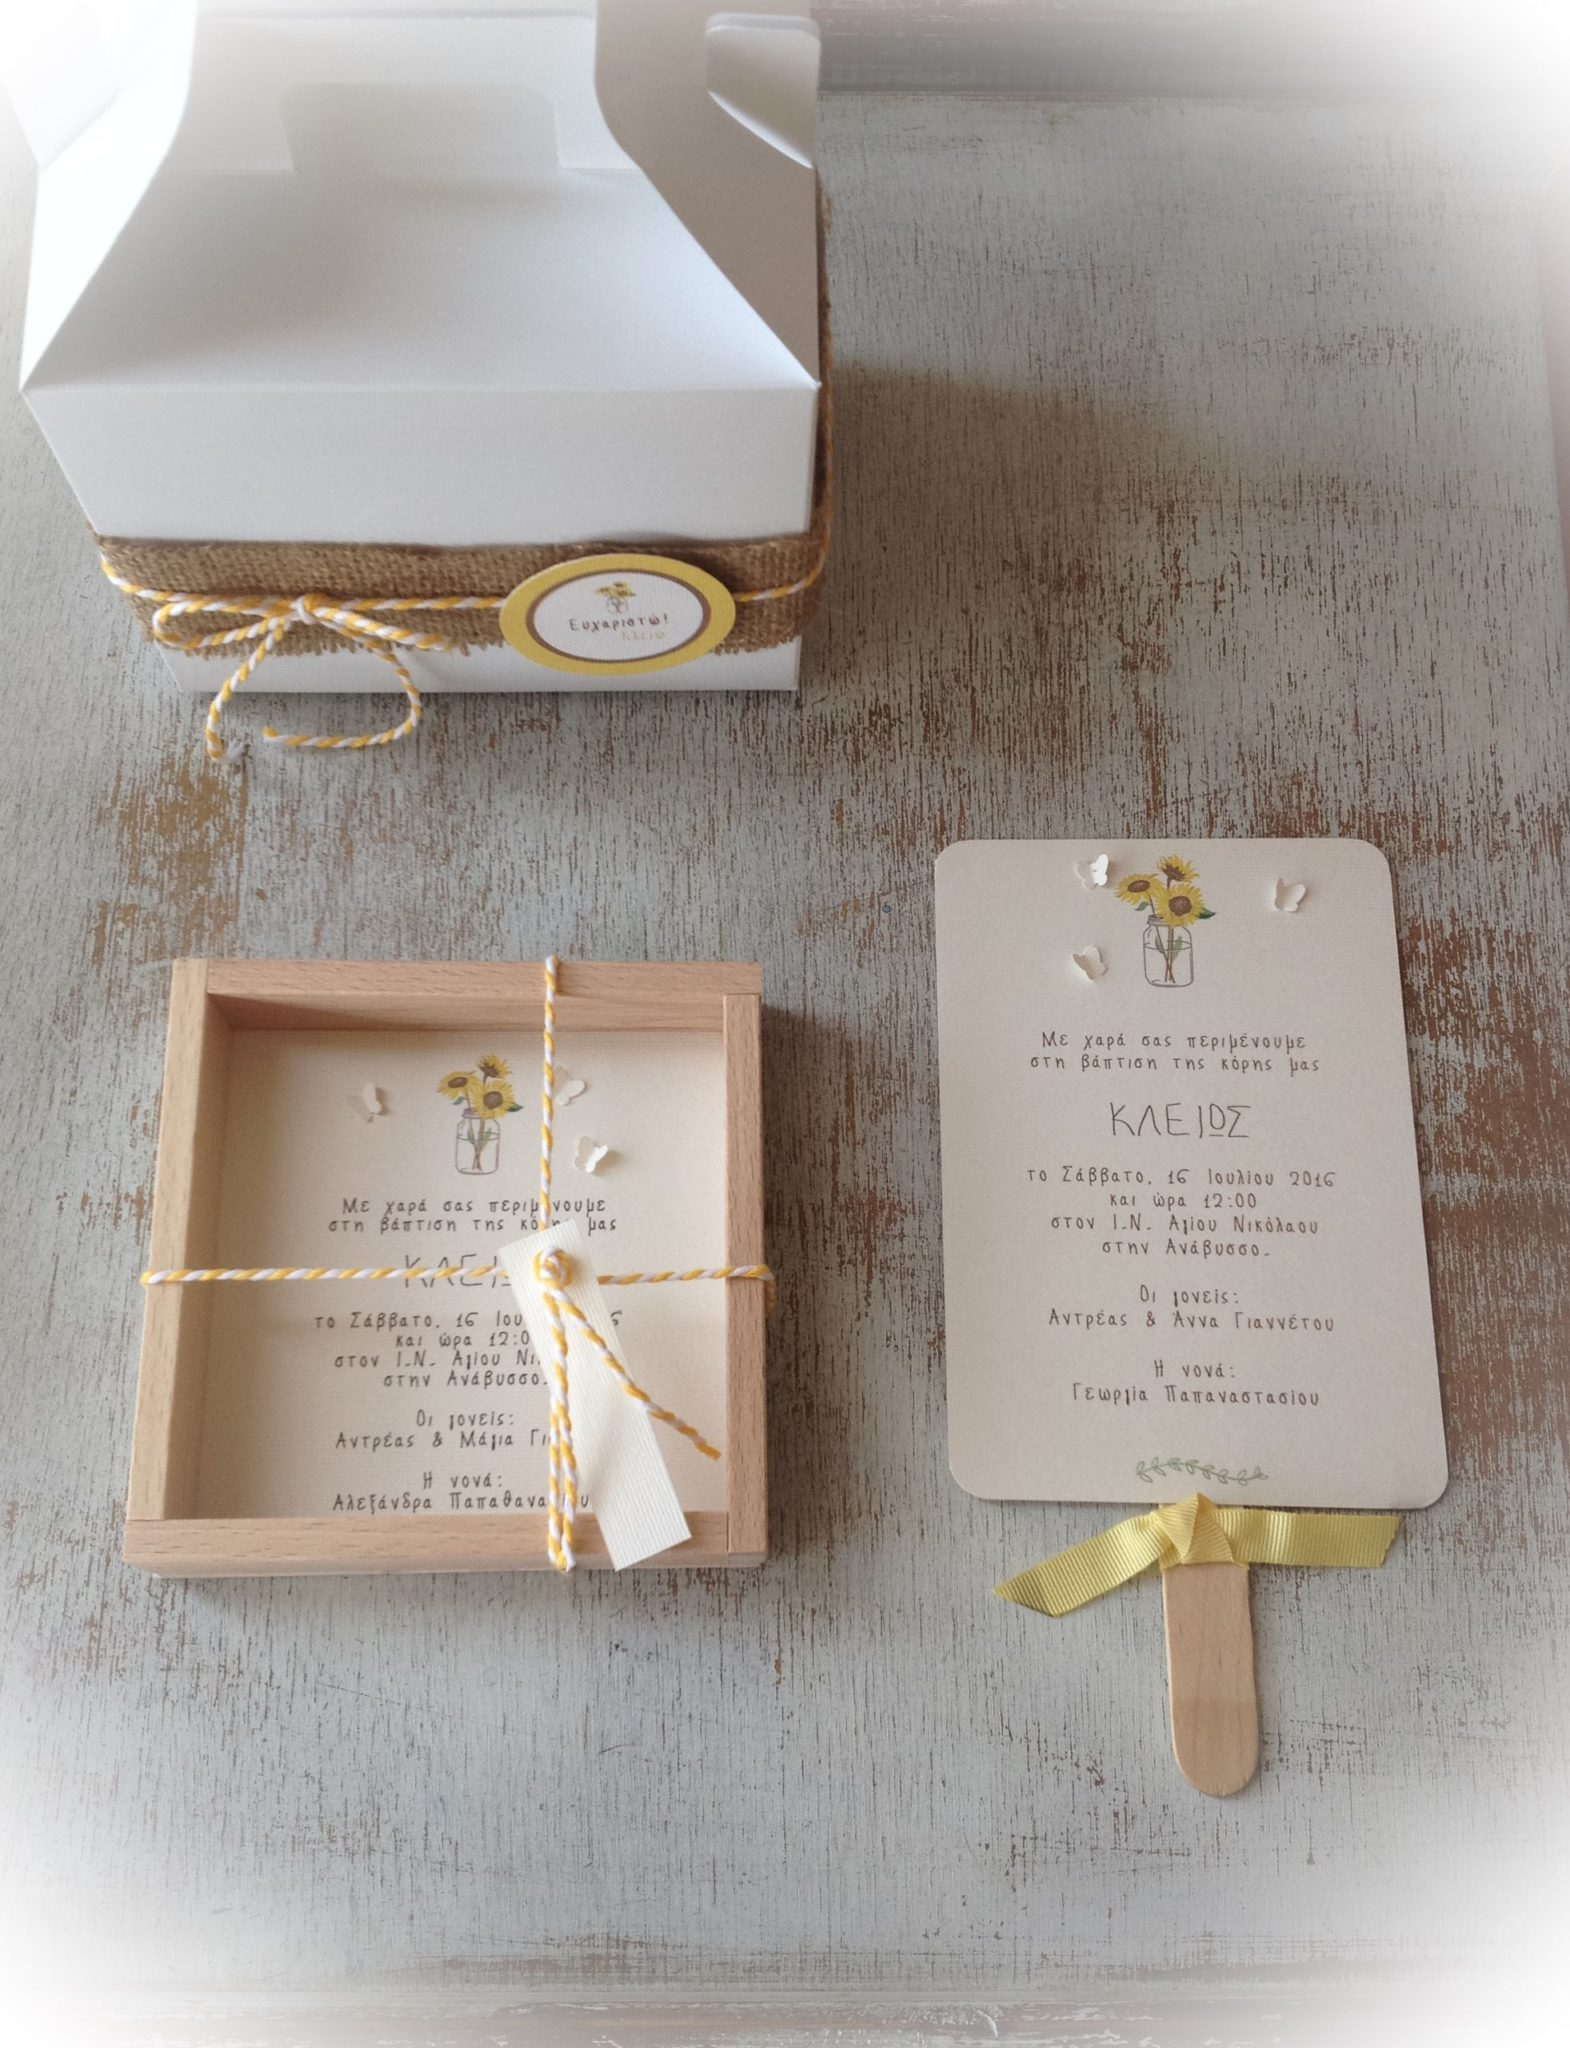 Sunflowers-baptism invitation proposals-gift box